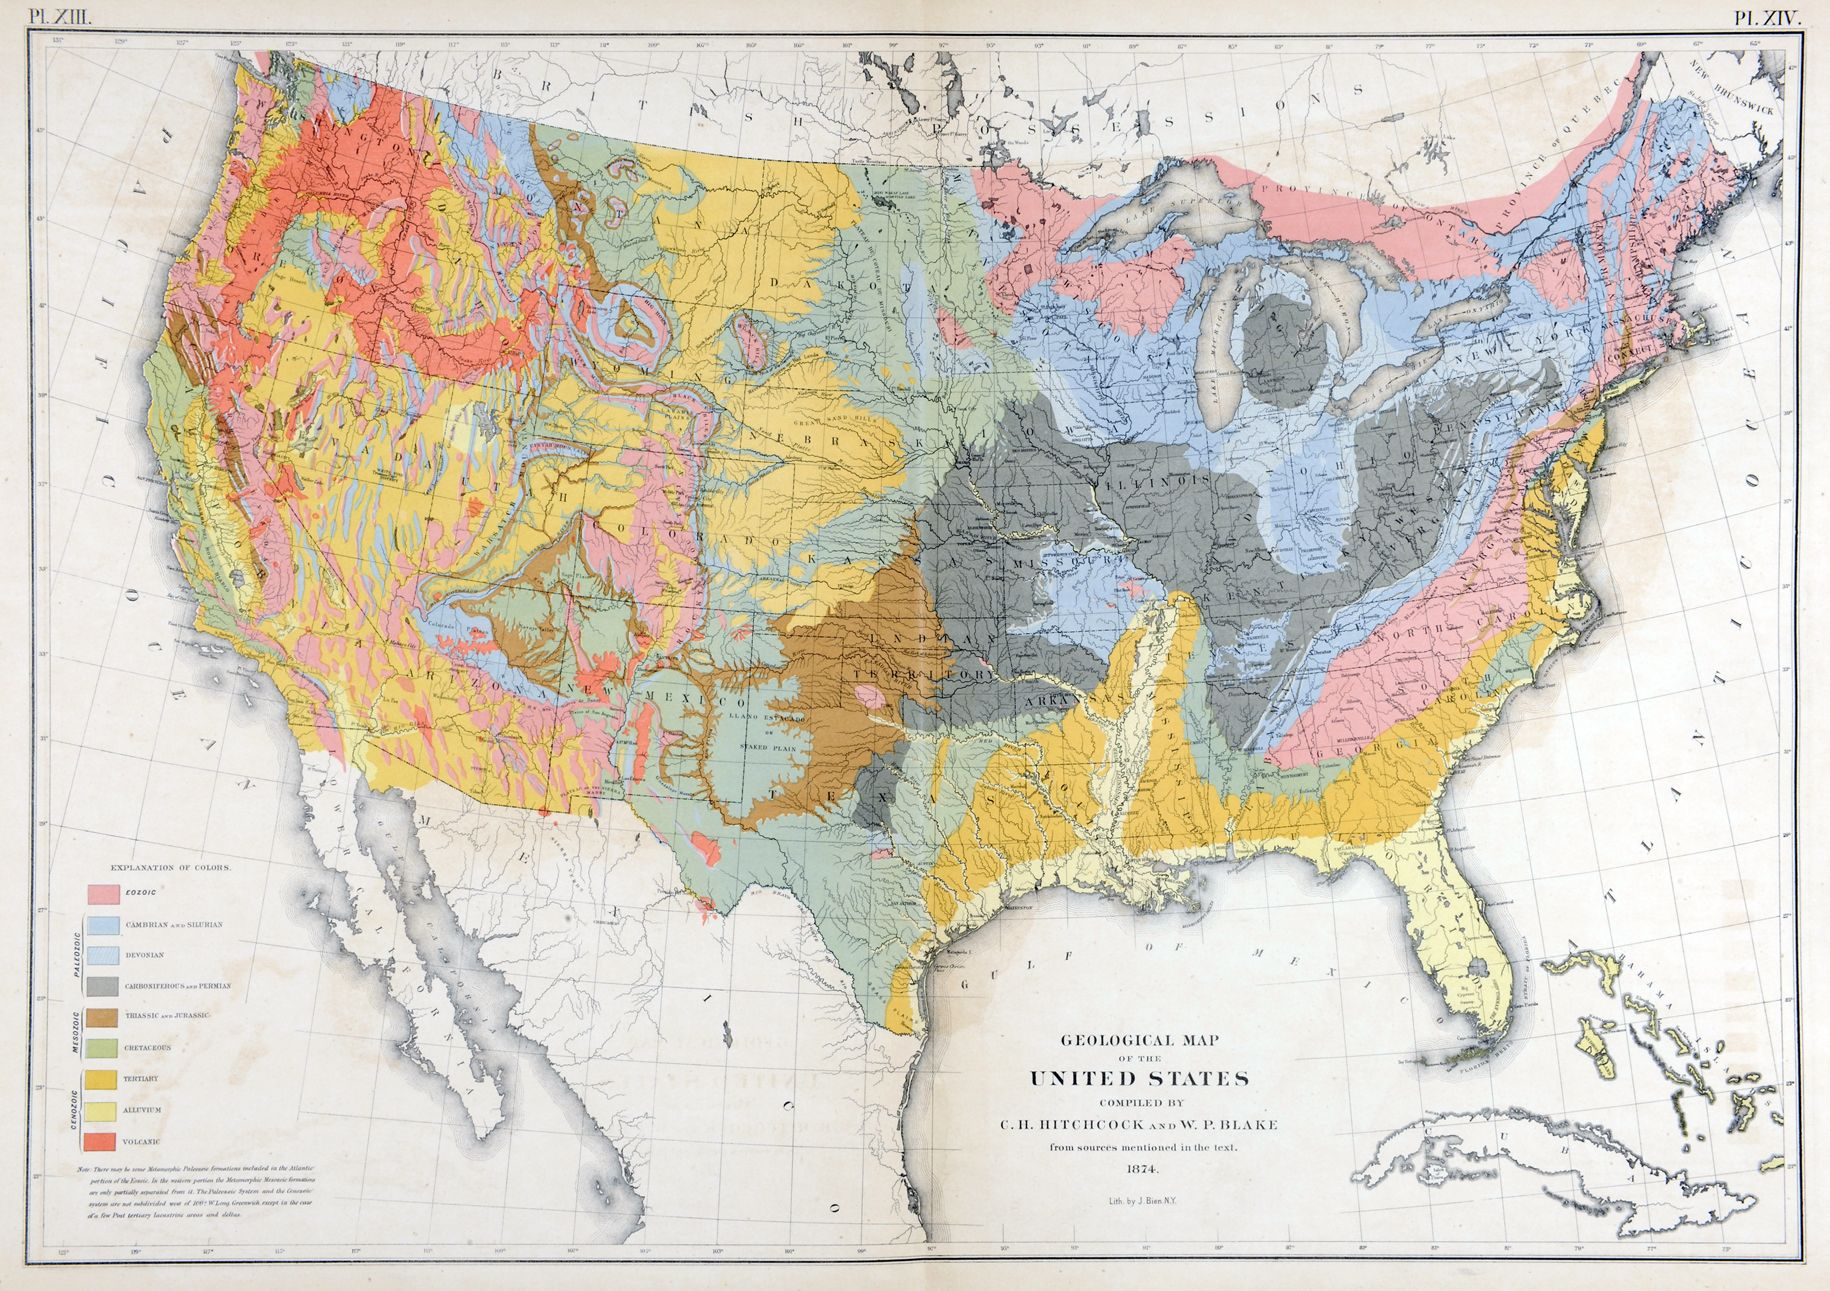 Geological Map Of The United States Compiled By C H Hitchcock - Isothermal map of us